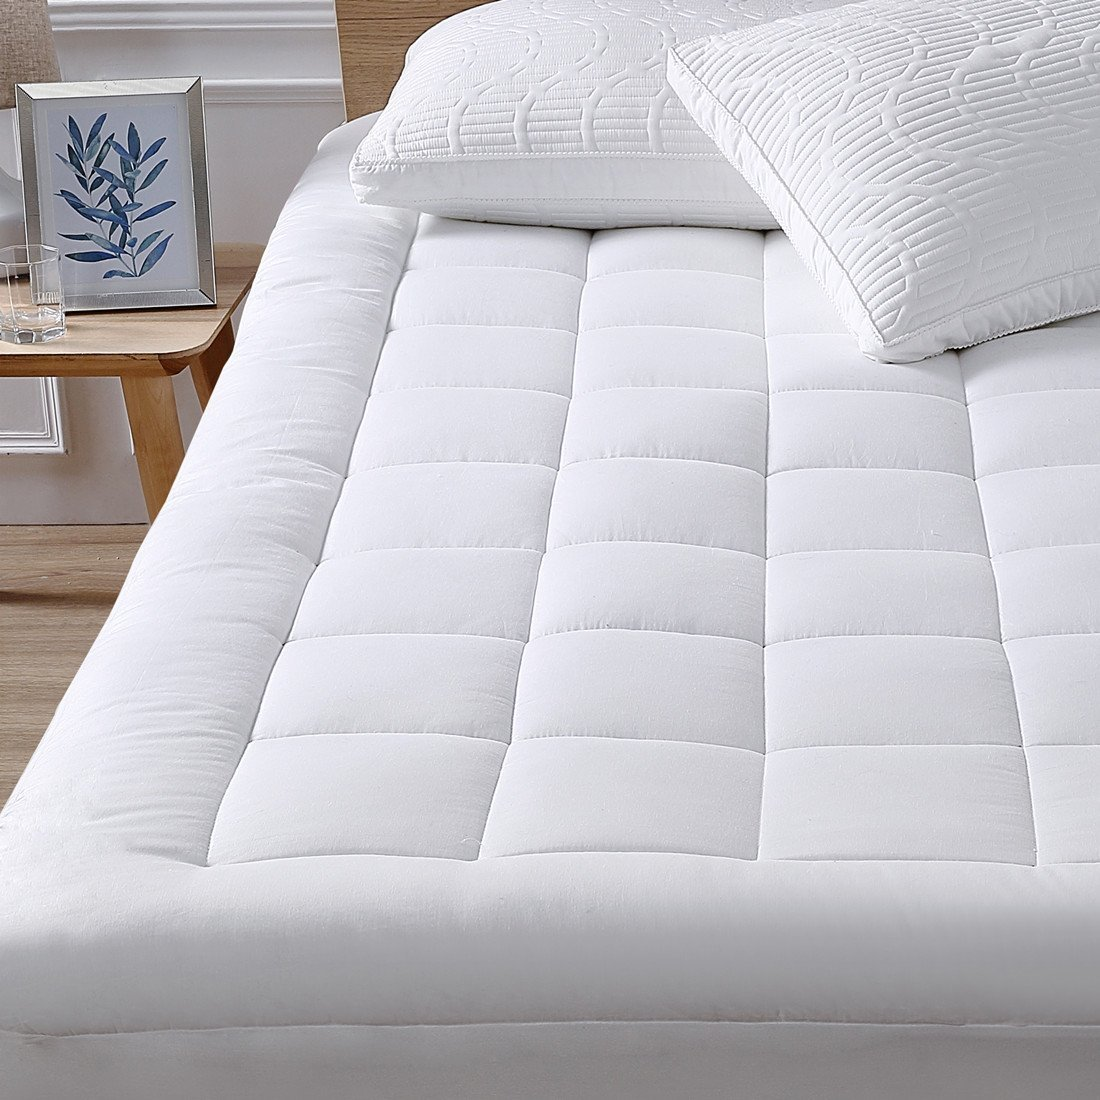 Oaskys Mattress Pad Cover Cotton Top with Stretches to 18'' Deep Pocket Fits Up to 8''-21'' Cooling White Bed Topper (Down Alternative, king size)